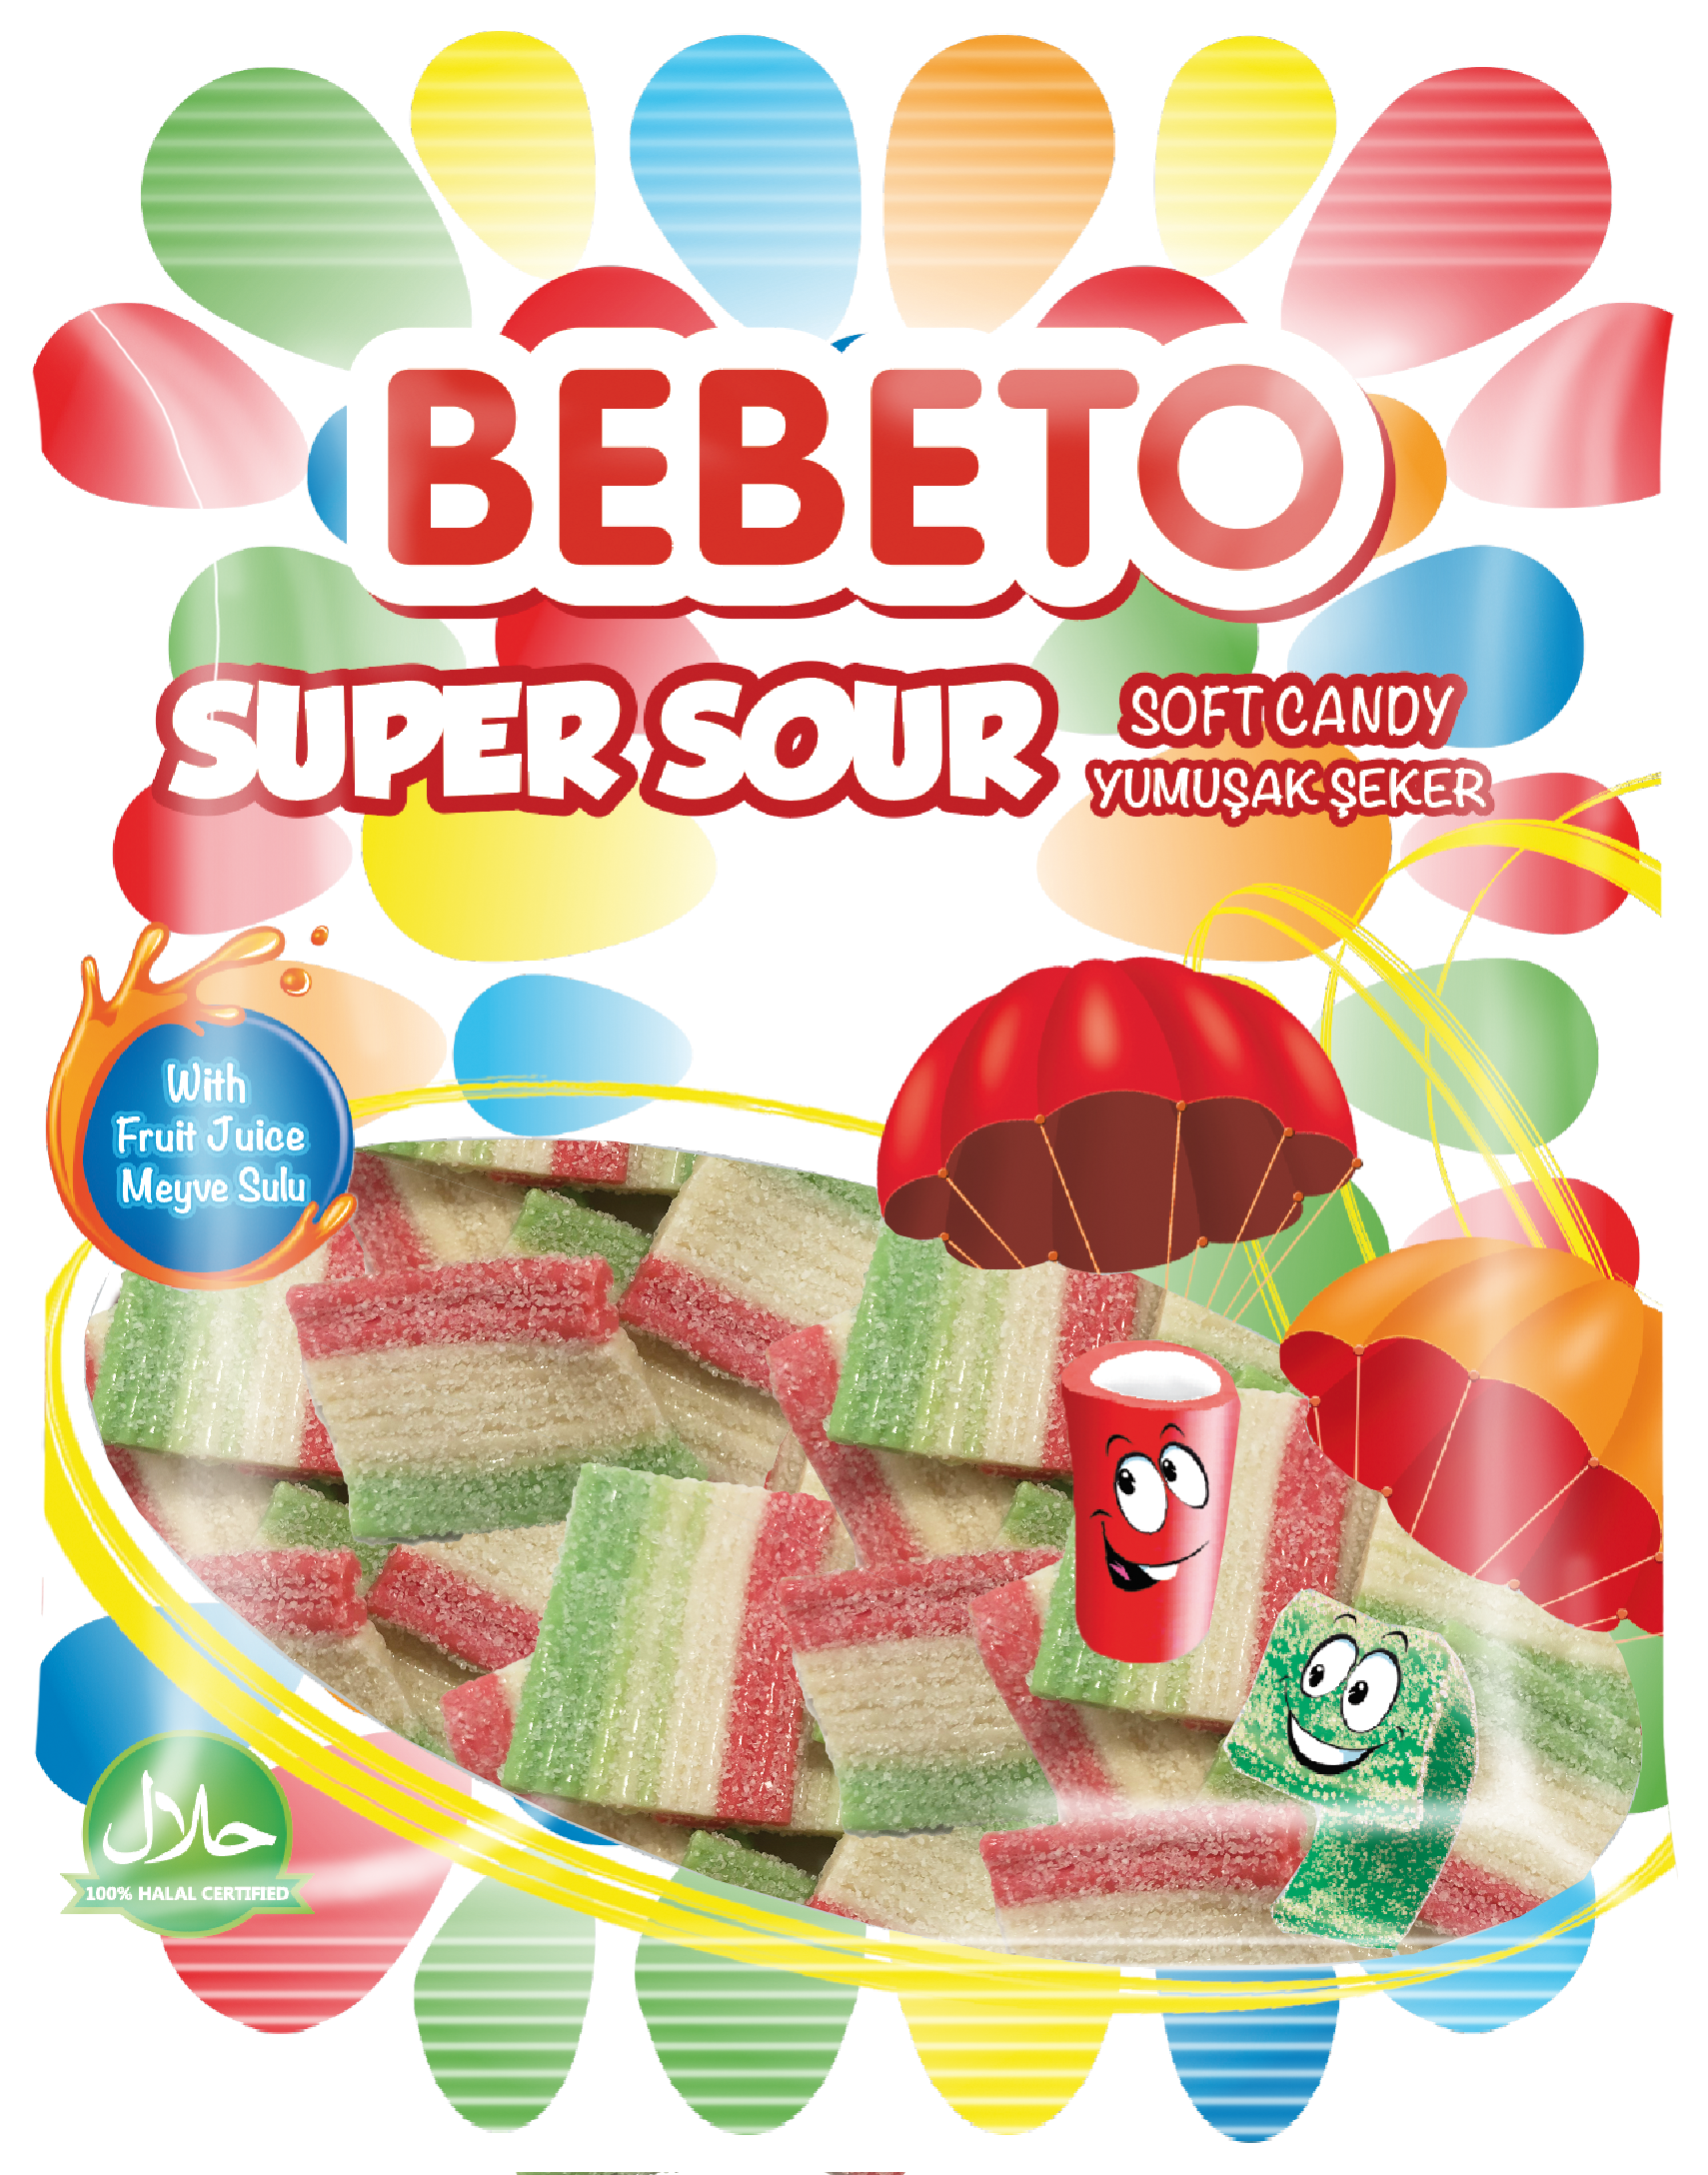 Bebeto Super sour